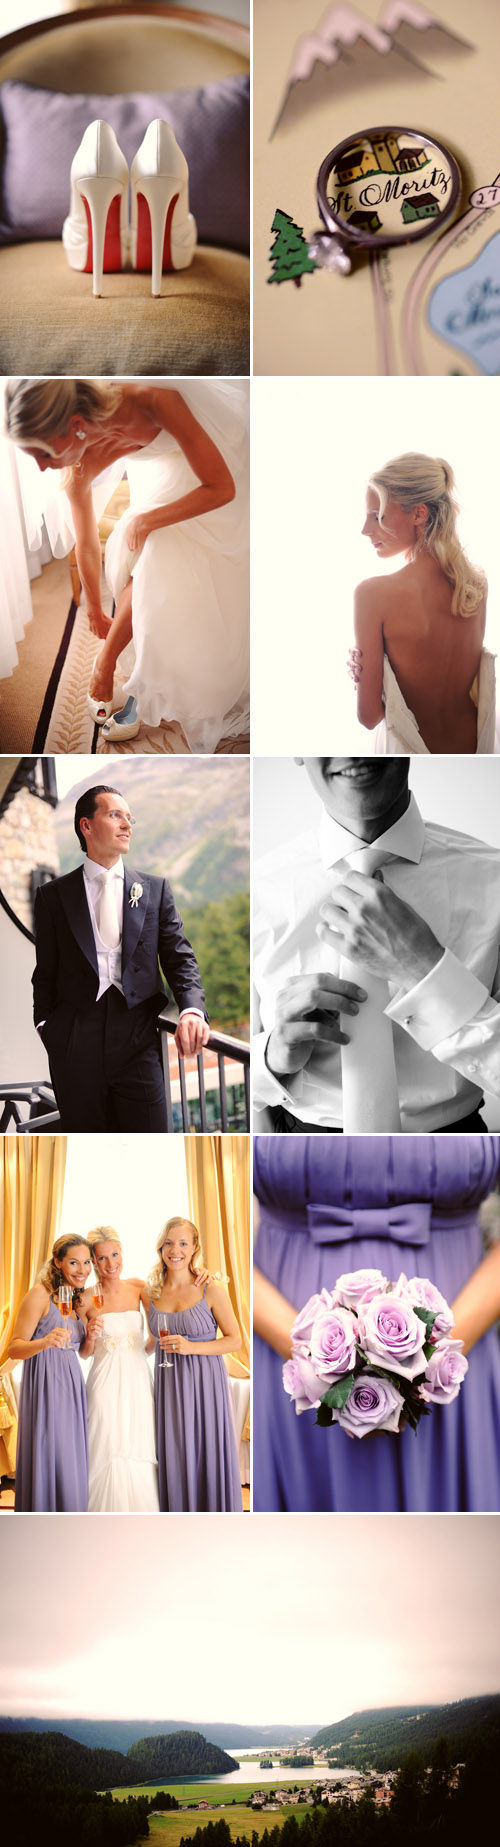 stunning purple and lavender wedding in St. Moritz, Switzerland, photos by Andrea & Marcus Photography